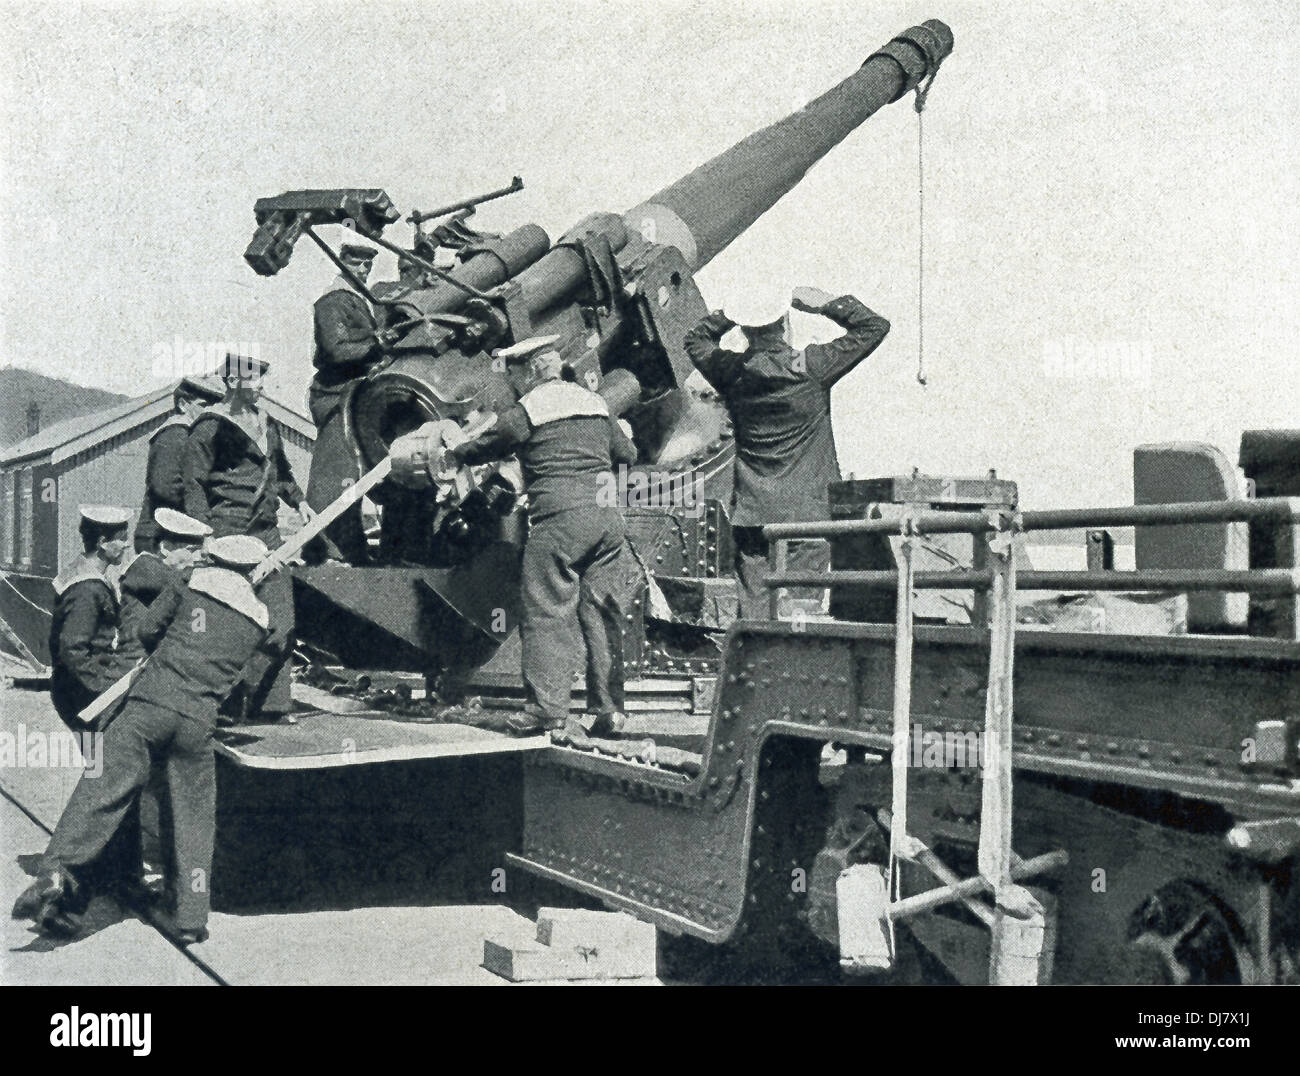 This photo taken aboard a British warship in the North Sea during World War I shows the crew positioning an anti-aircraft gun. - Stock Image